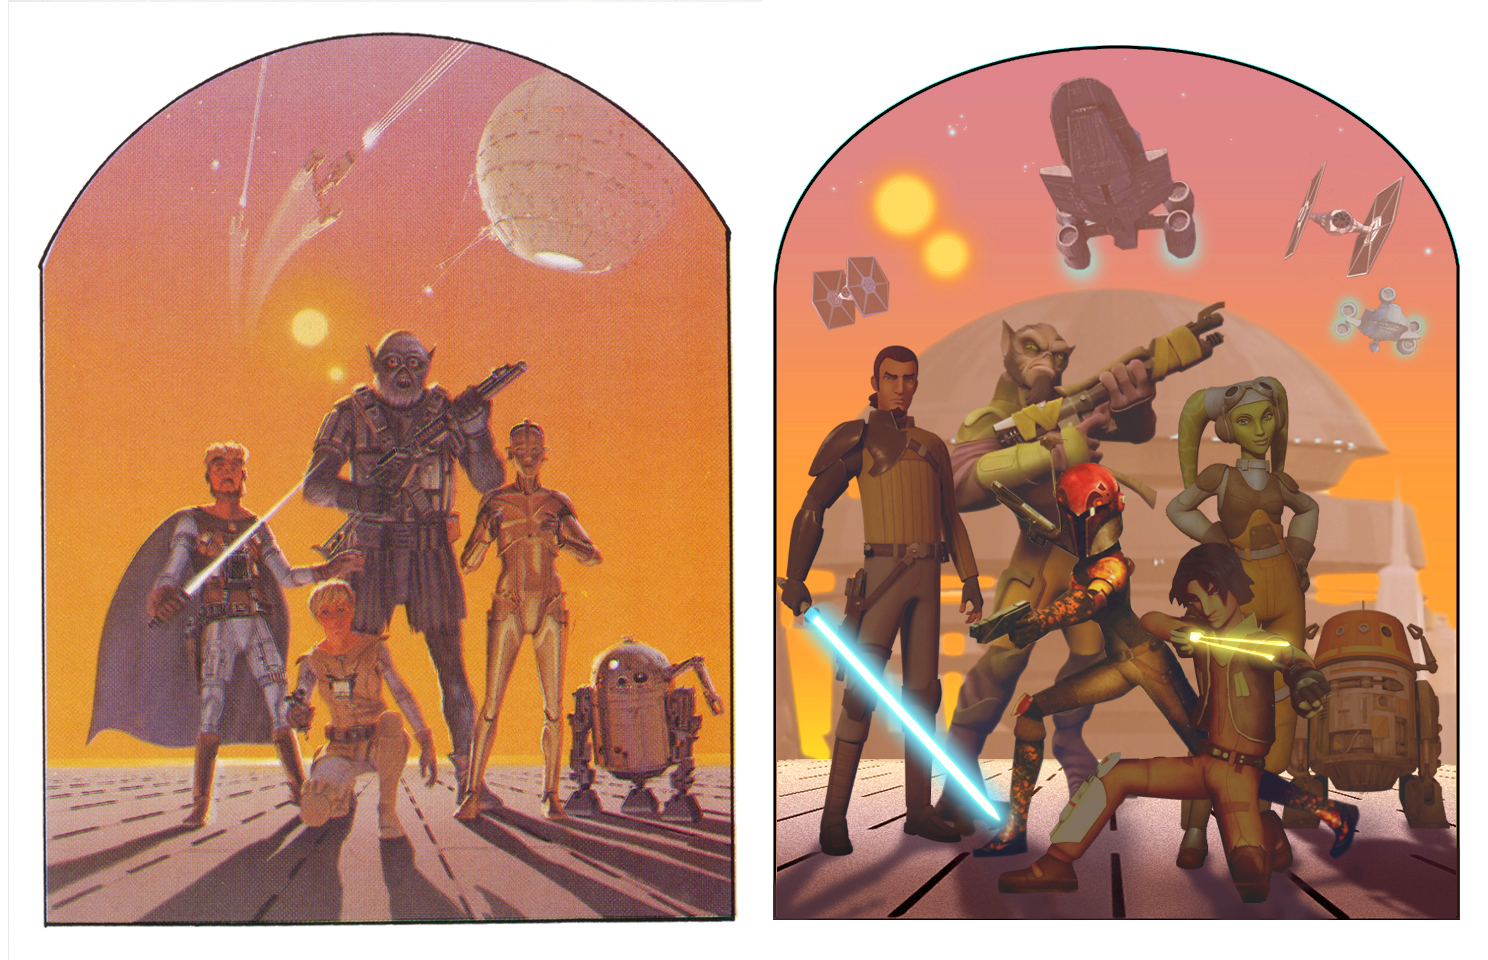 Star Wars Rebels Season 3 Spoiler Thread - Page 2 Vintage_style_mcquarrie_rebels_poster_comparison_by_brian_snook-d7vlnhx